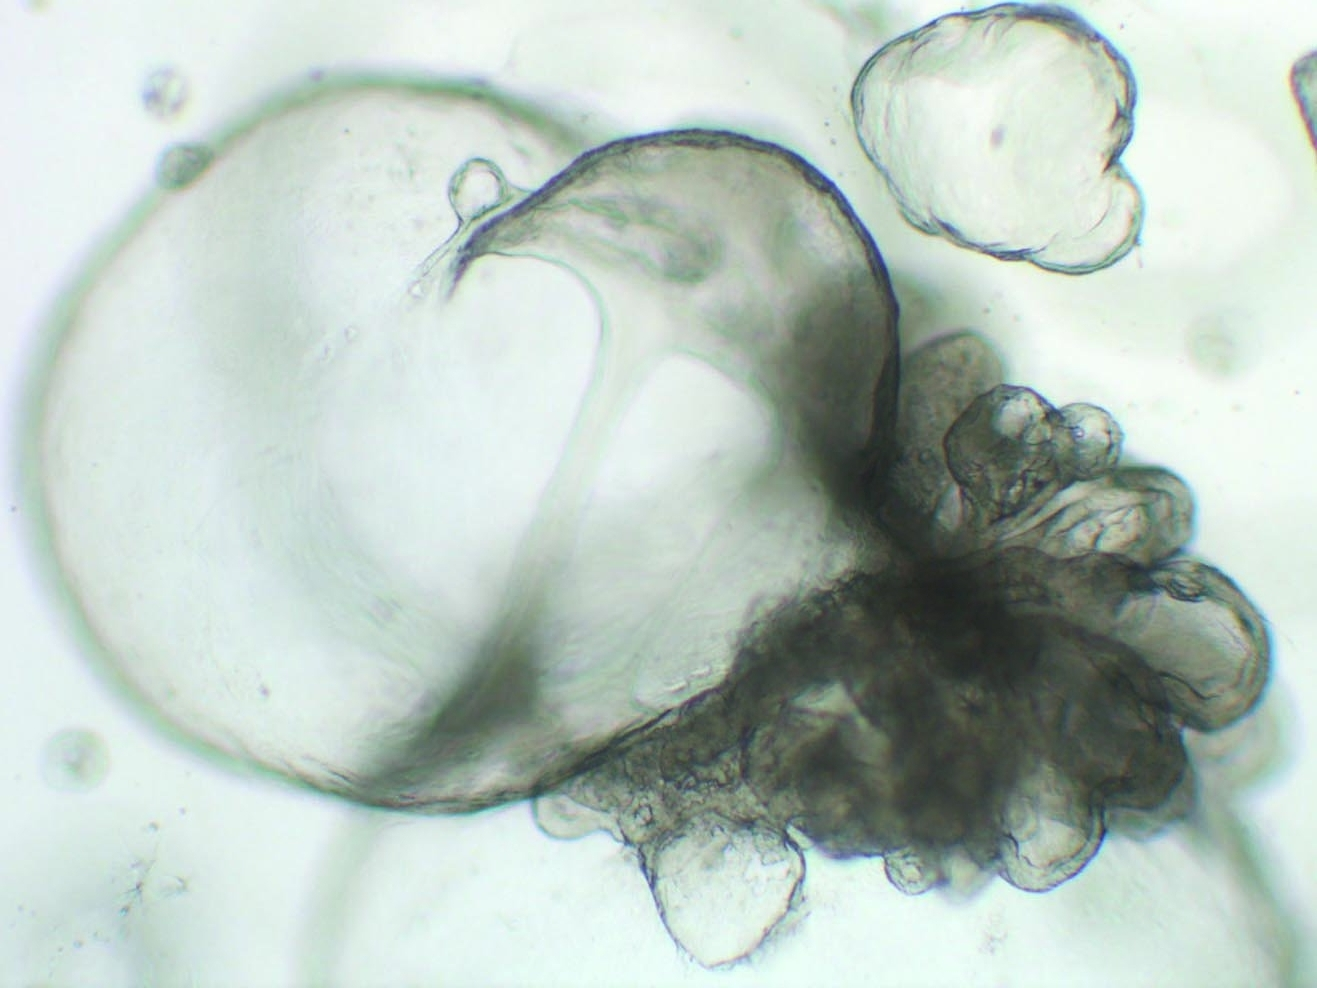 Intestinal Organoidsaka 'Mini Guts' -